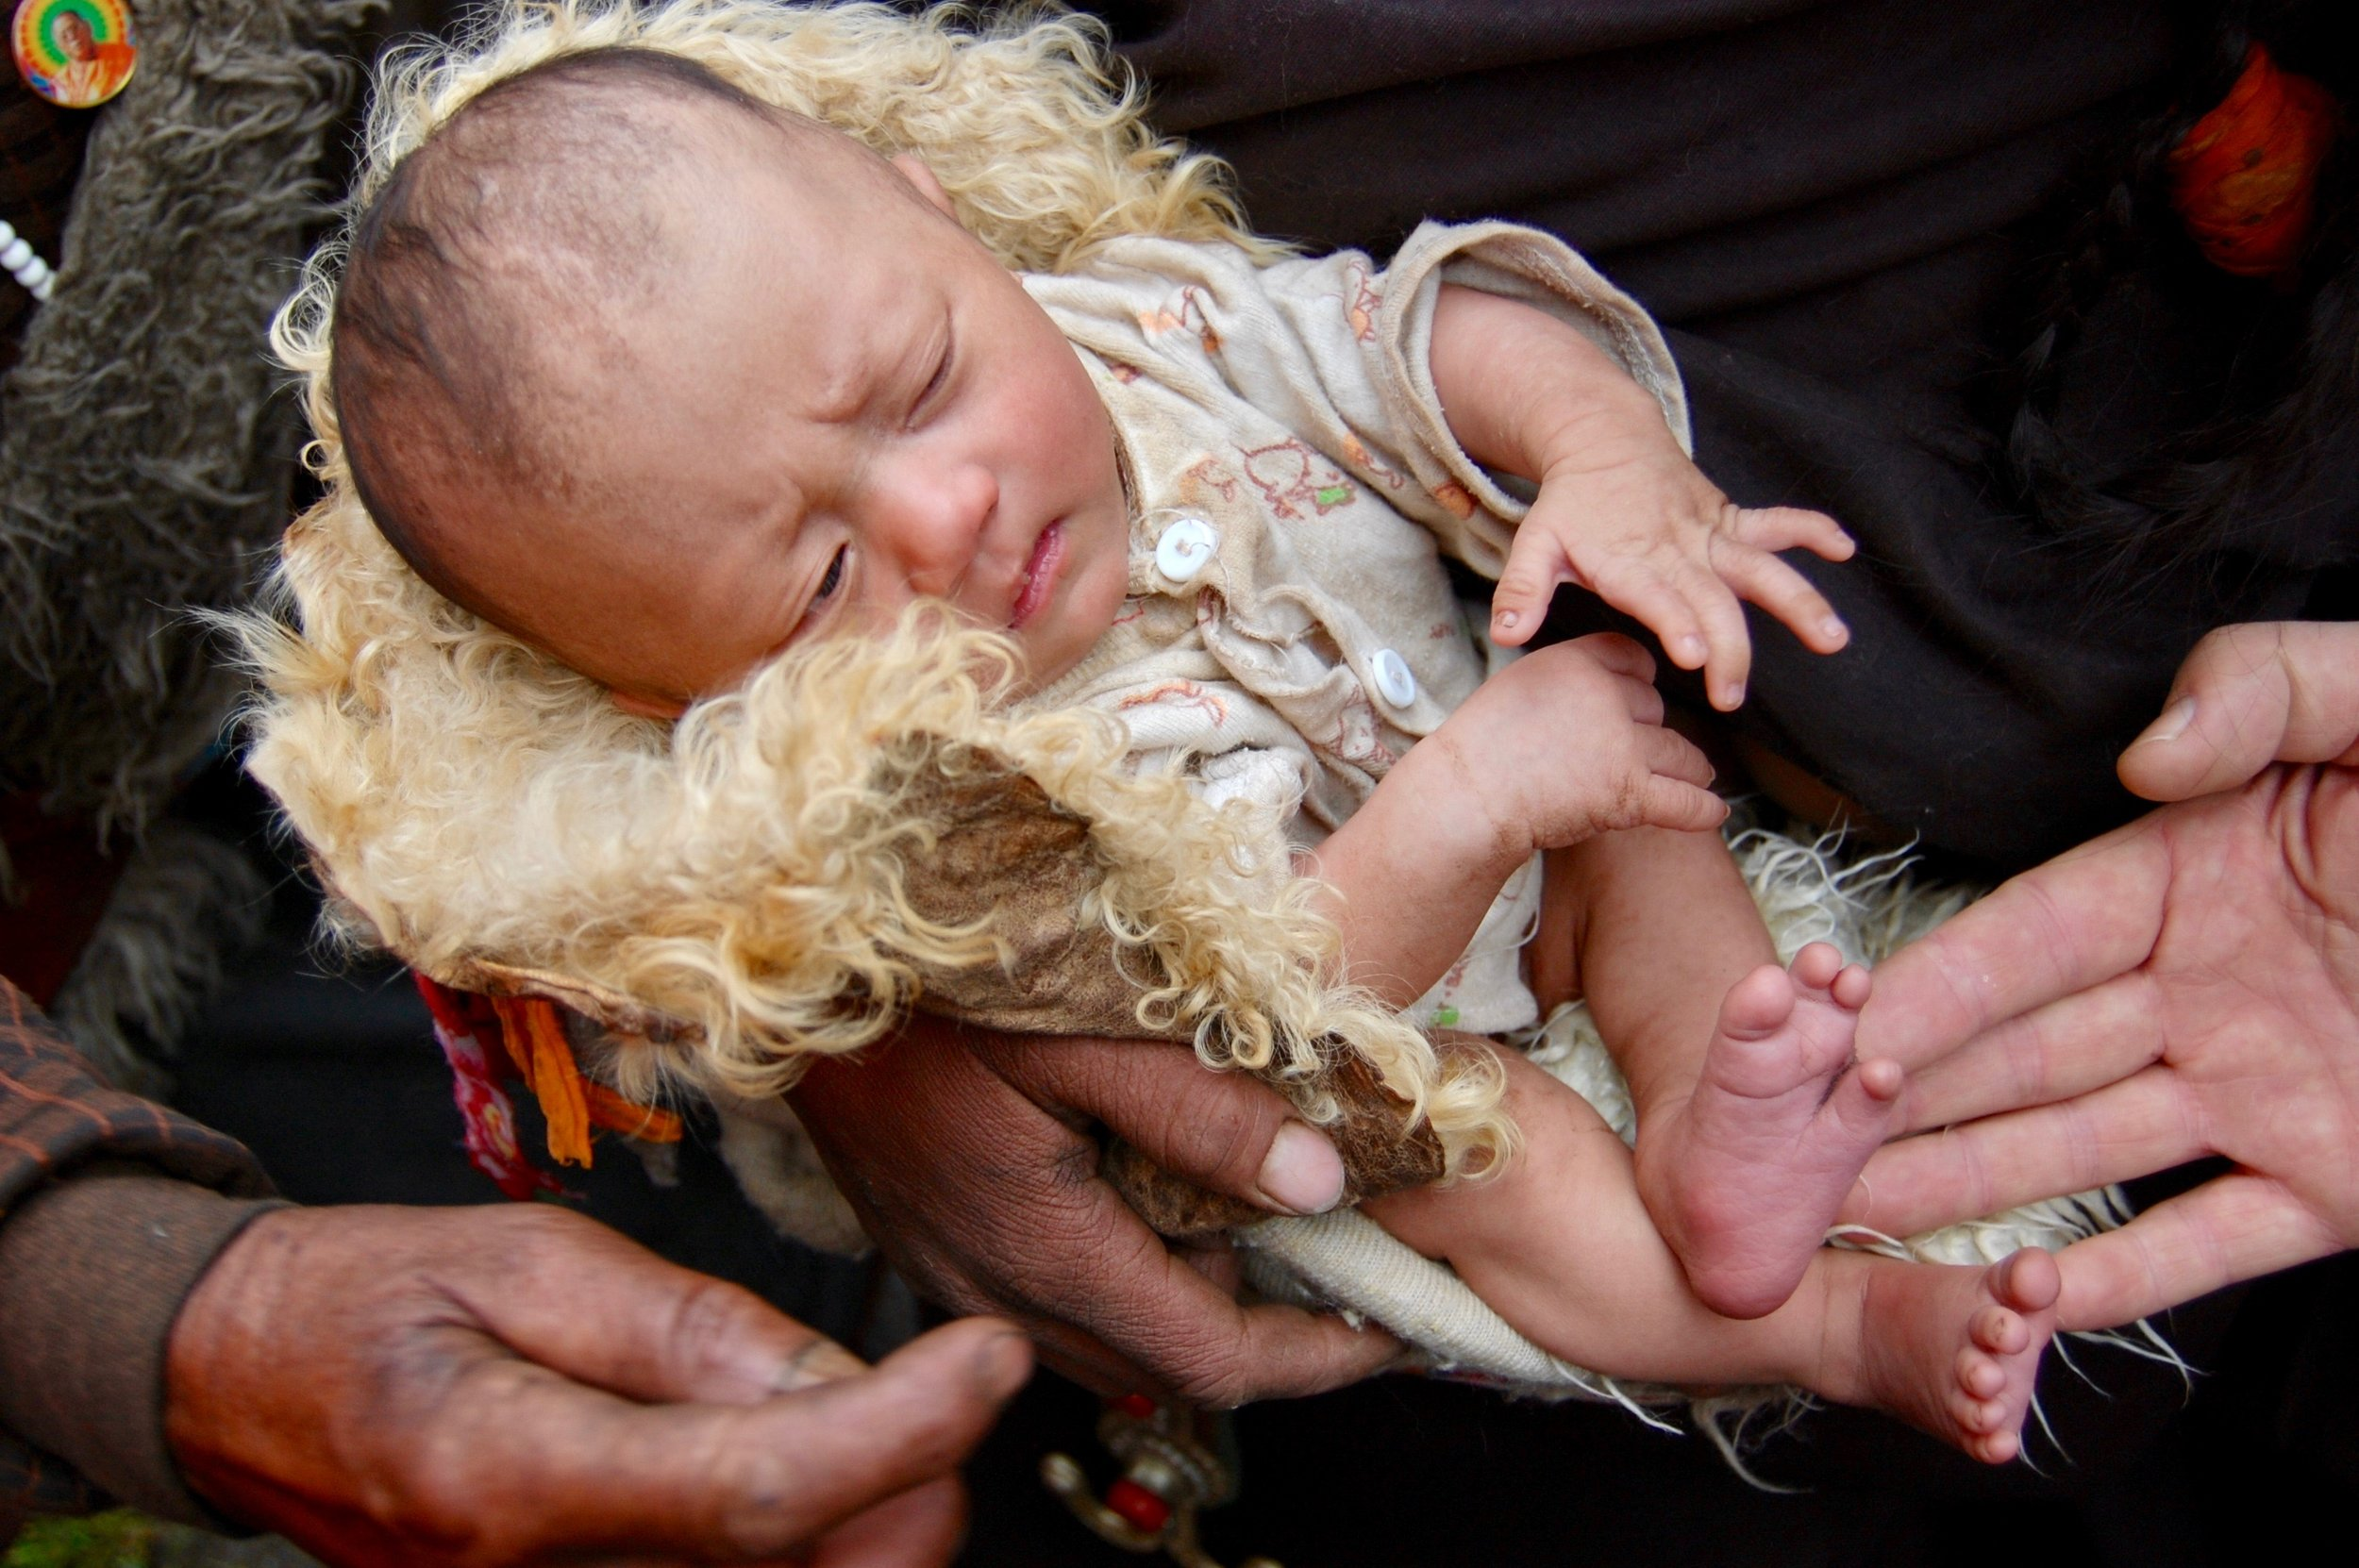 An infant shows signs of in-utero nutritional deficiency, a common problem in the remote communities of Tibet (Kham Region, Sichuan)